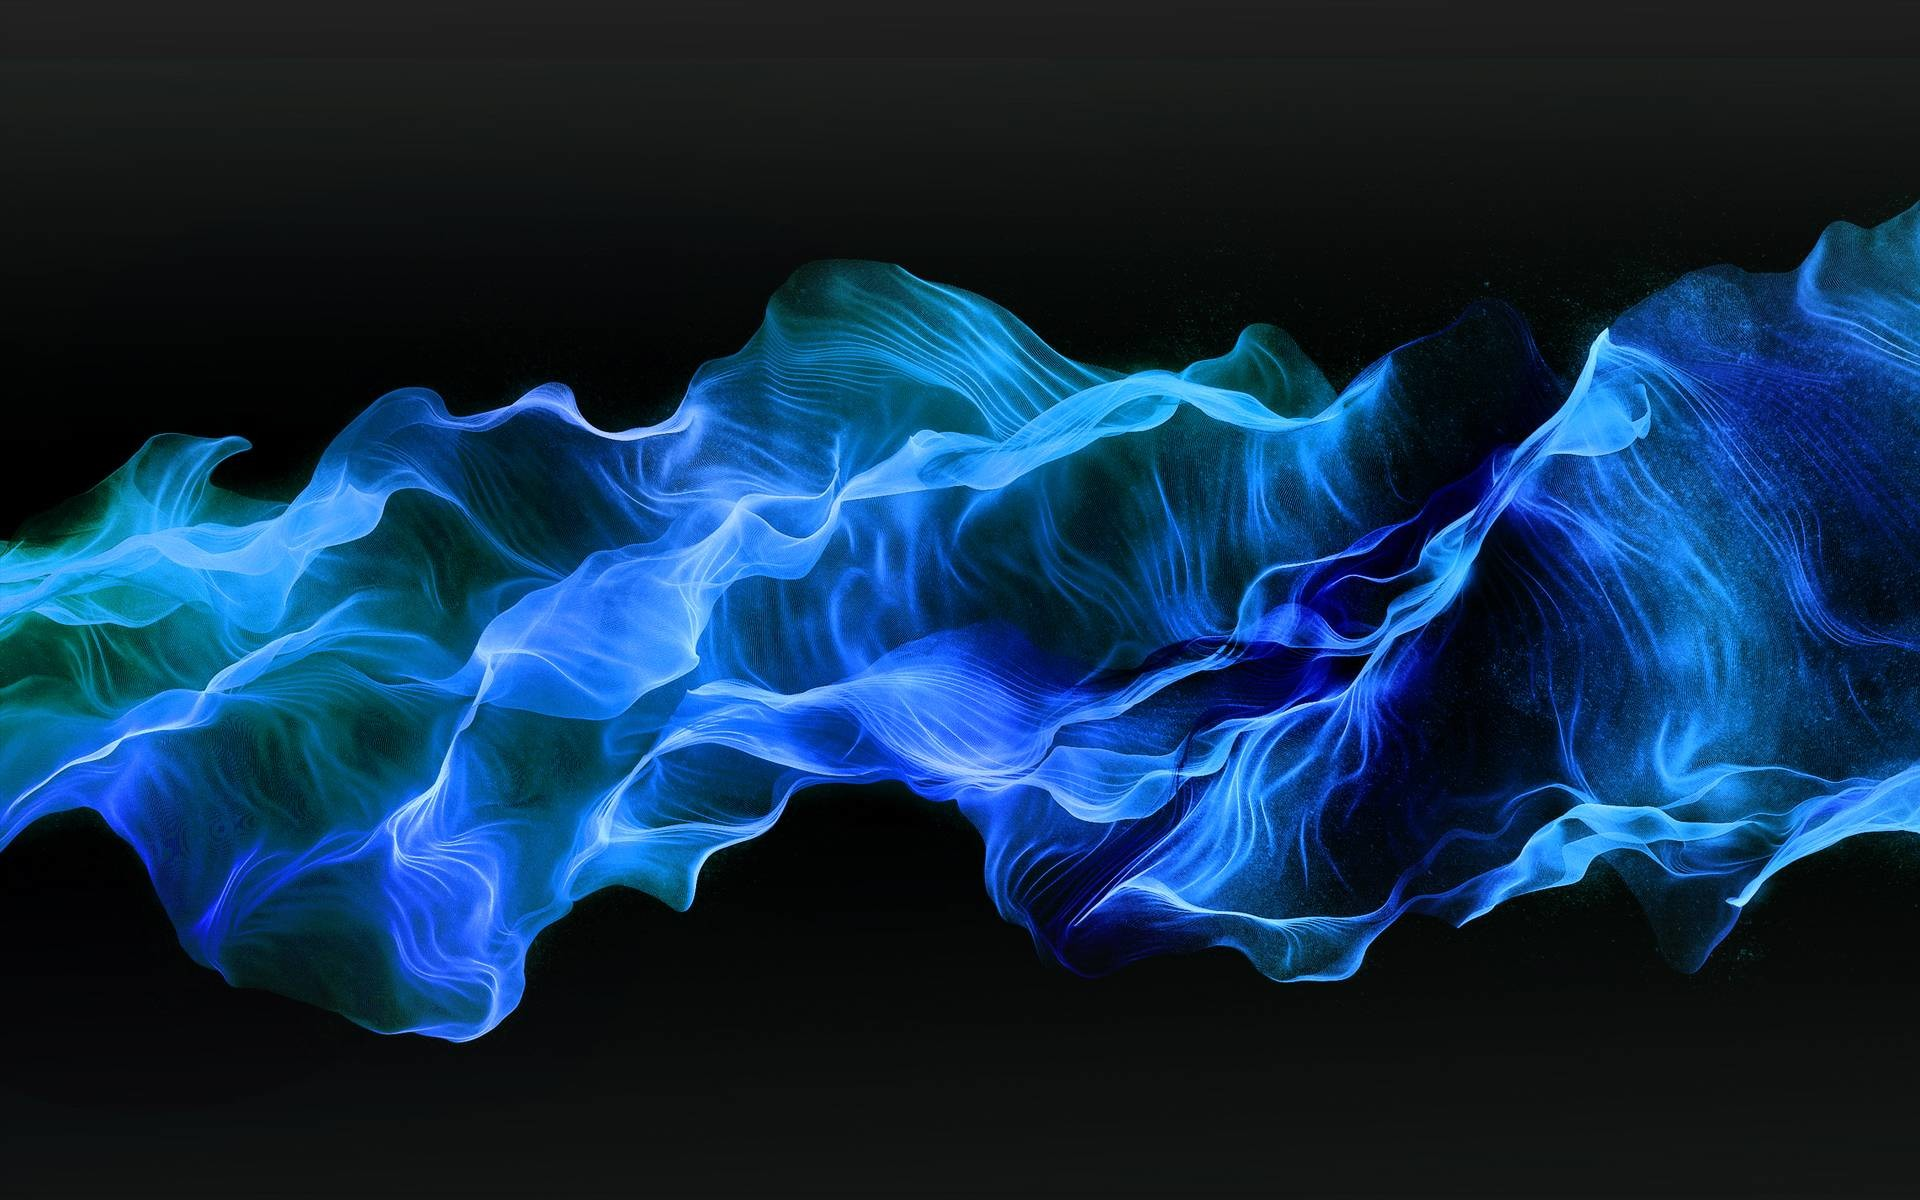 Blue Fire Wallpaper 64 Pictures